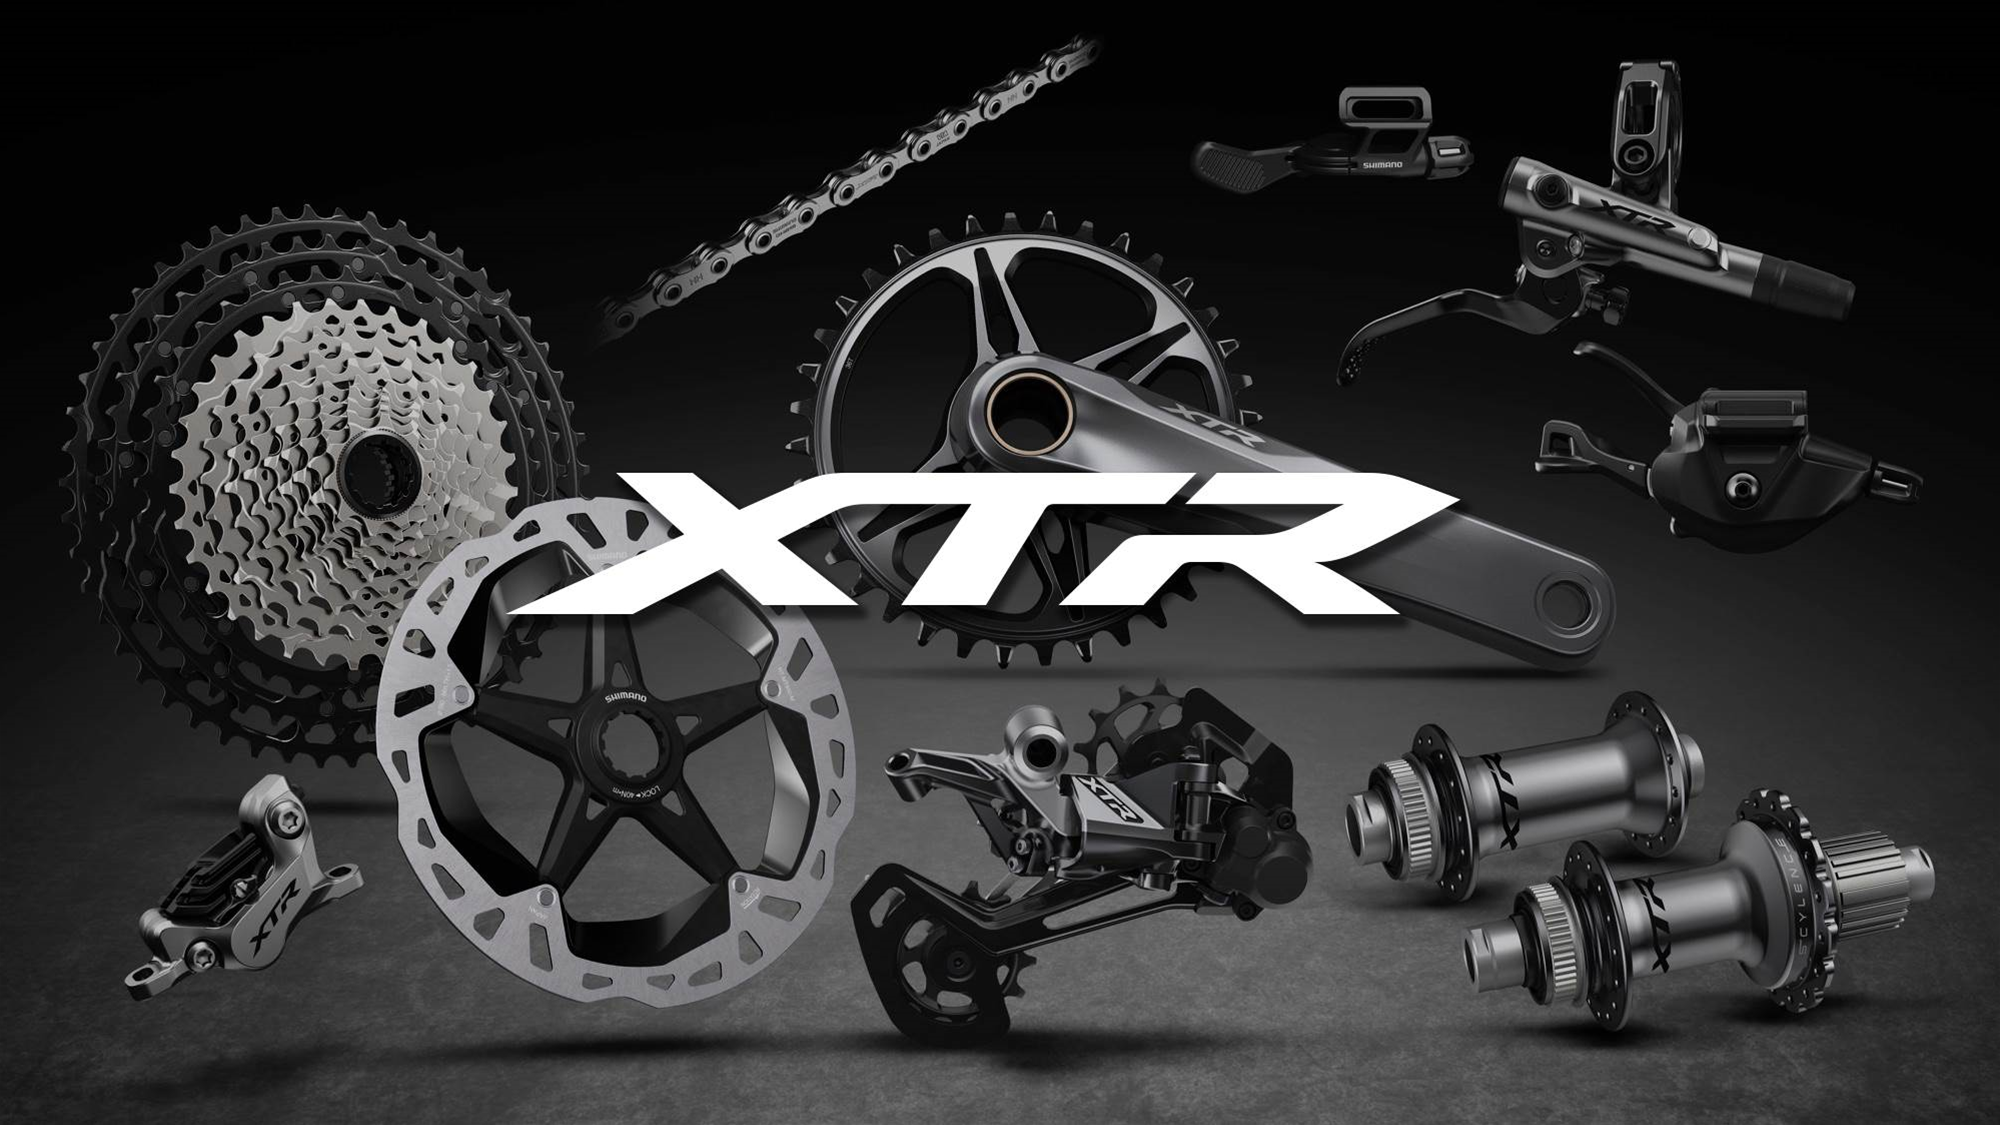 XTR M9100 is here